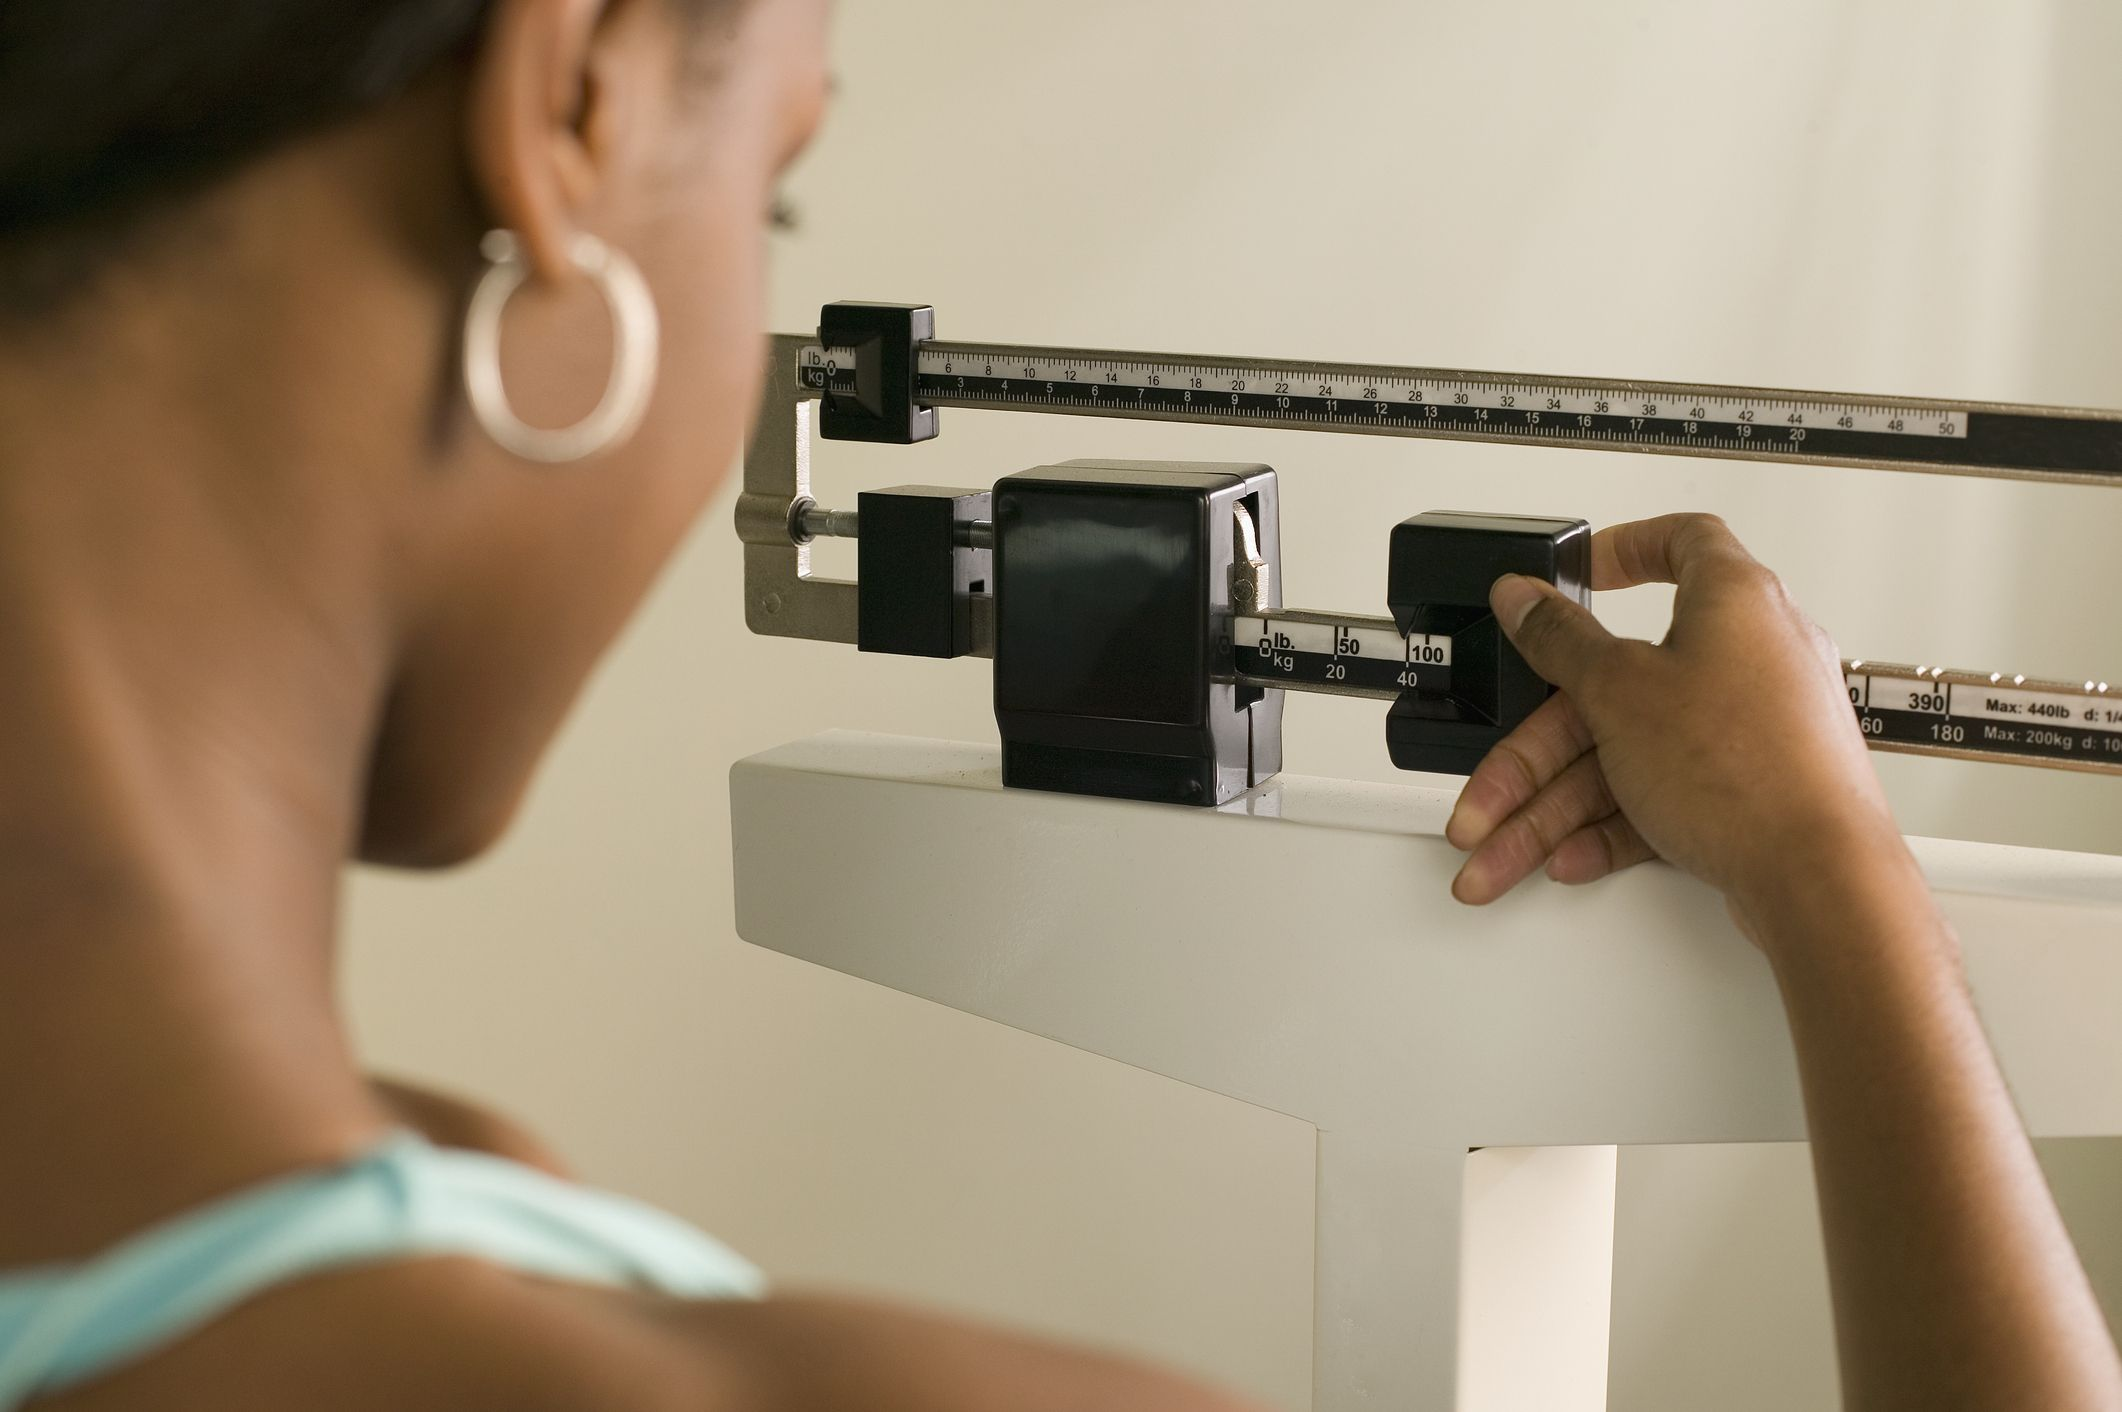 Woman on scale adjusting weight for accuracy.